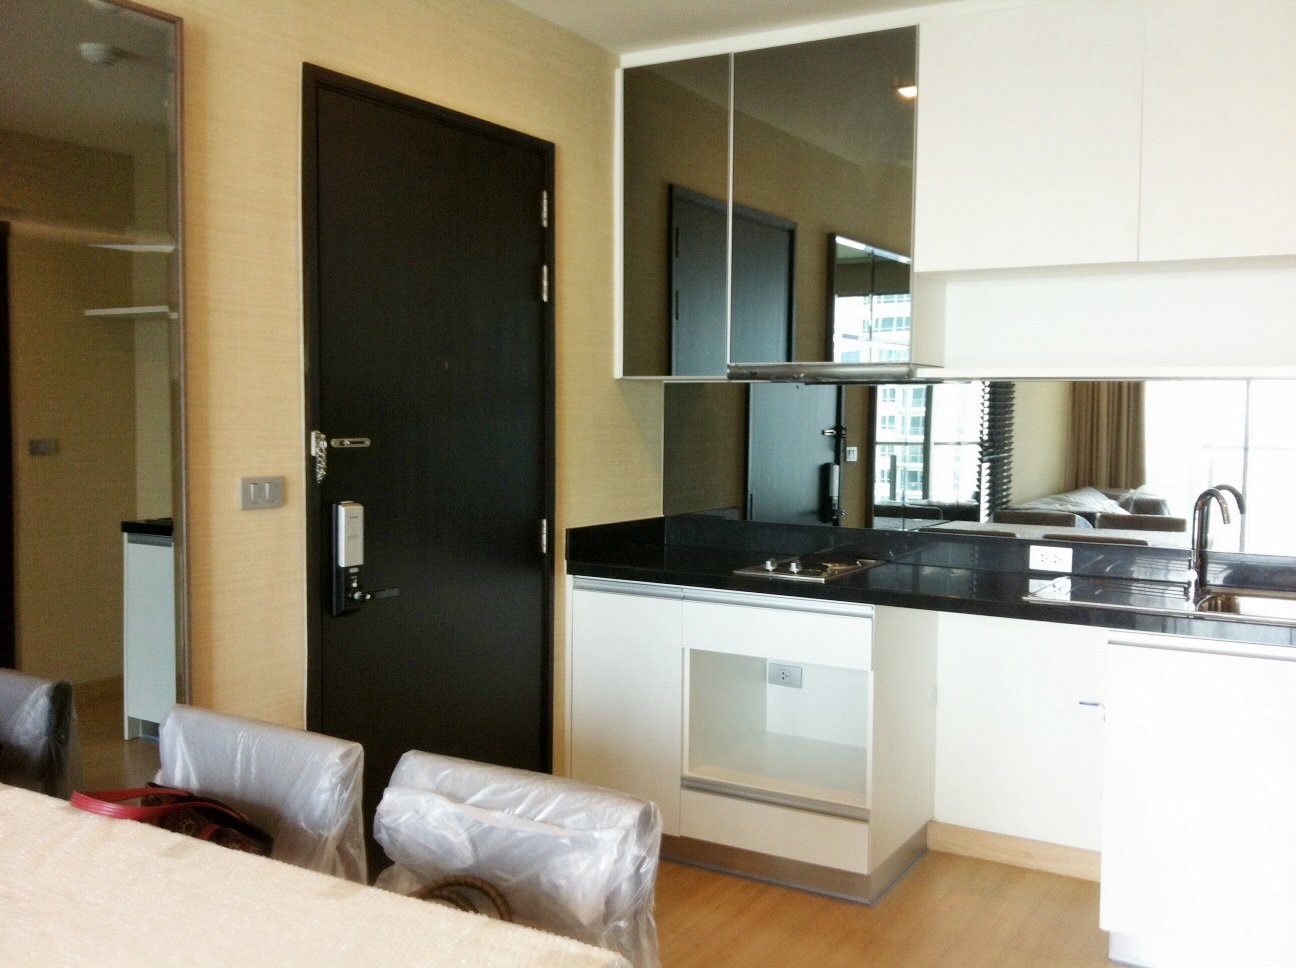 RE/MAX Properties Agency's RENT 1 Bedroom 52 Sq.m at Sky Walk condominium 6